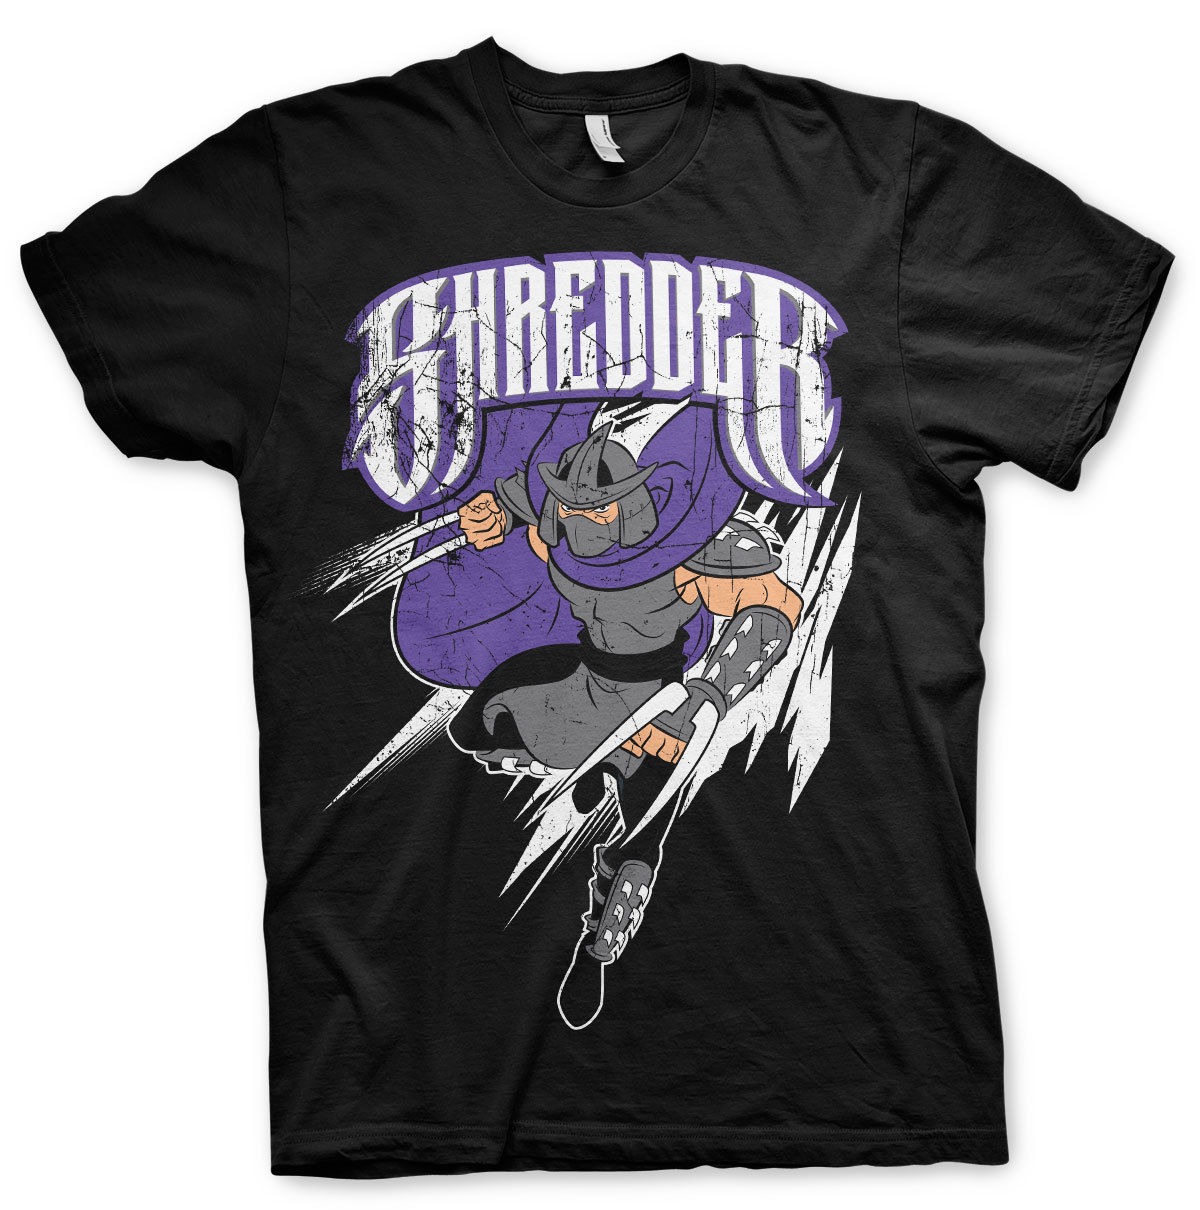 Officially Licensed TMNT- The Shredder Mens T-Shirt S-3XL Sizes Casual Plus Size T Shirts Hip Hop Style Tops Tee S-3Xl